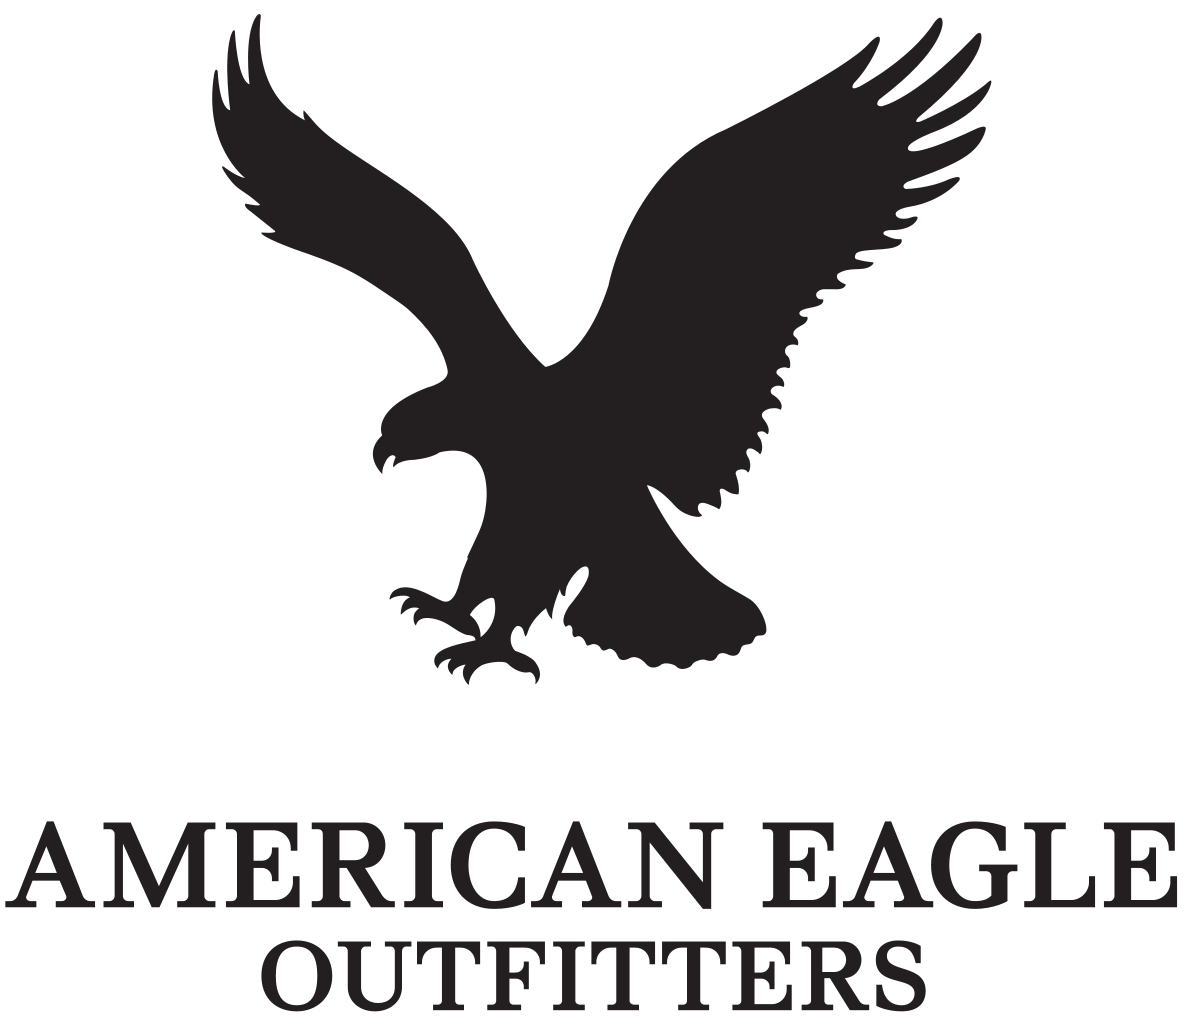 American Eagle Website Online Store Review